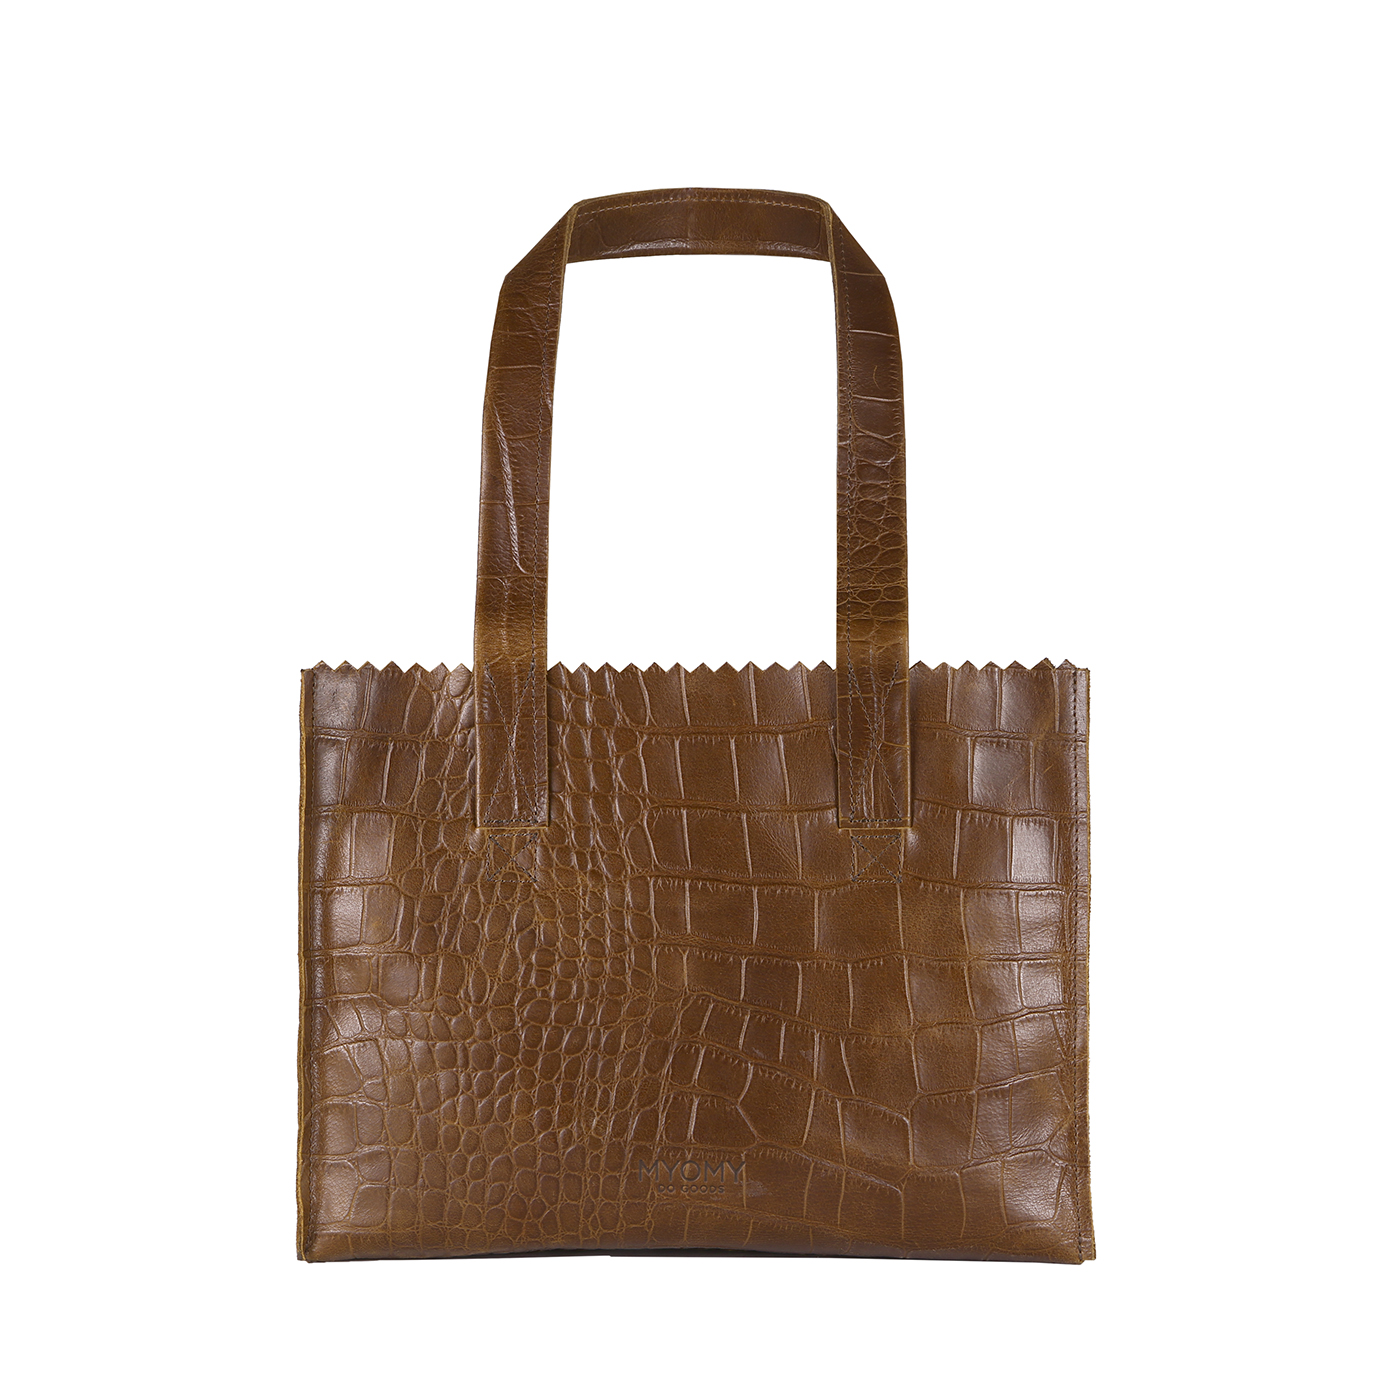 MY PAPER BAG Handbag - croco original